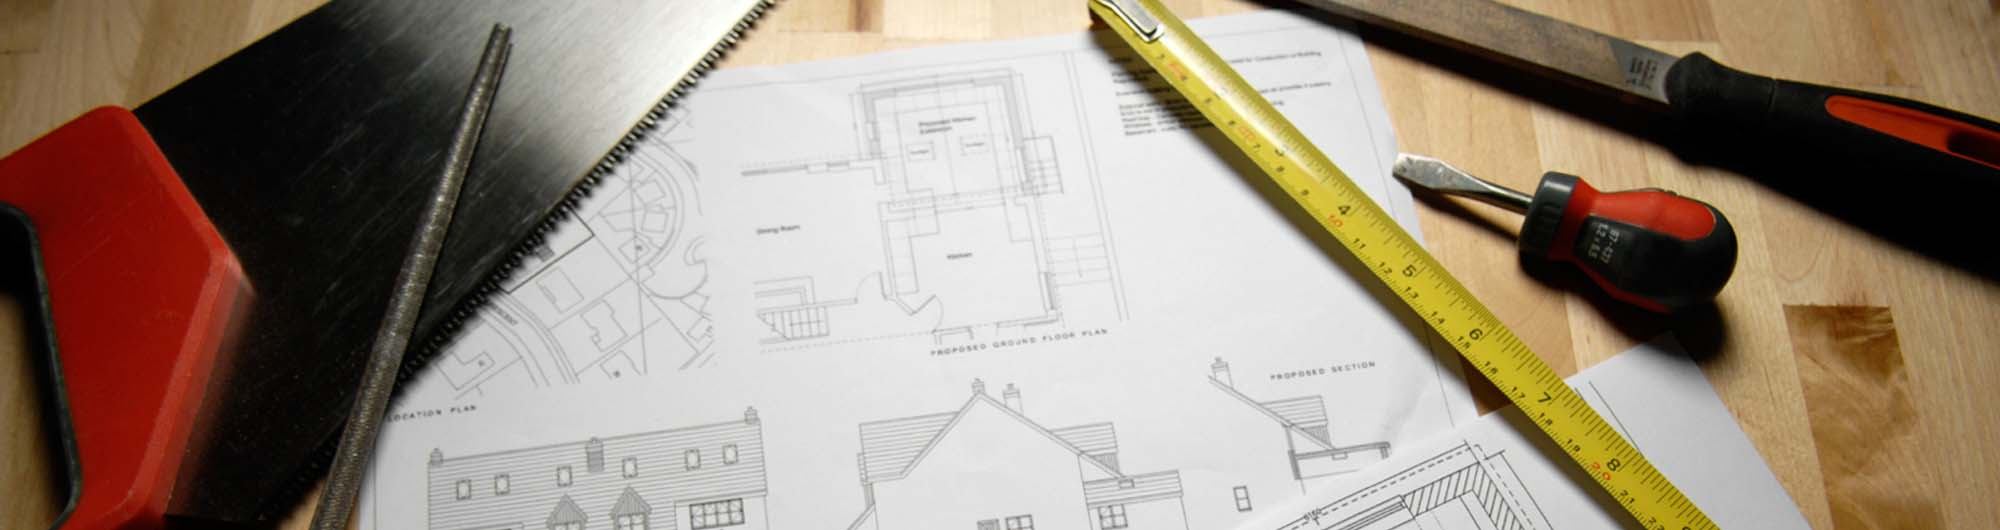 About East Coast Construction and Remodeling Inc.